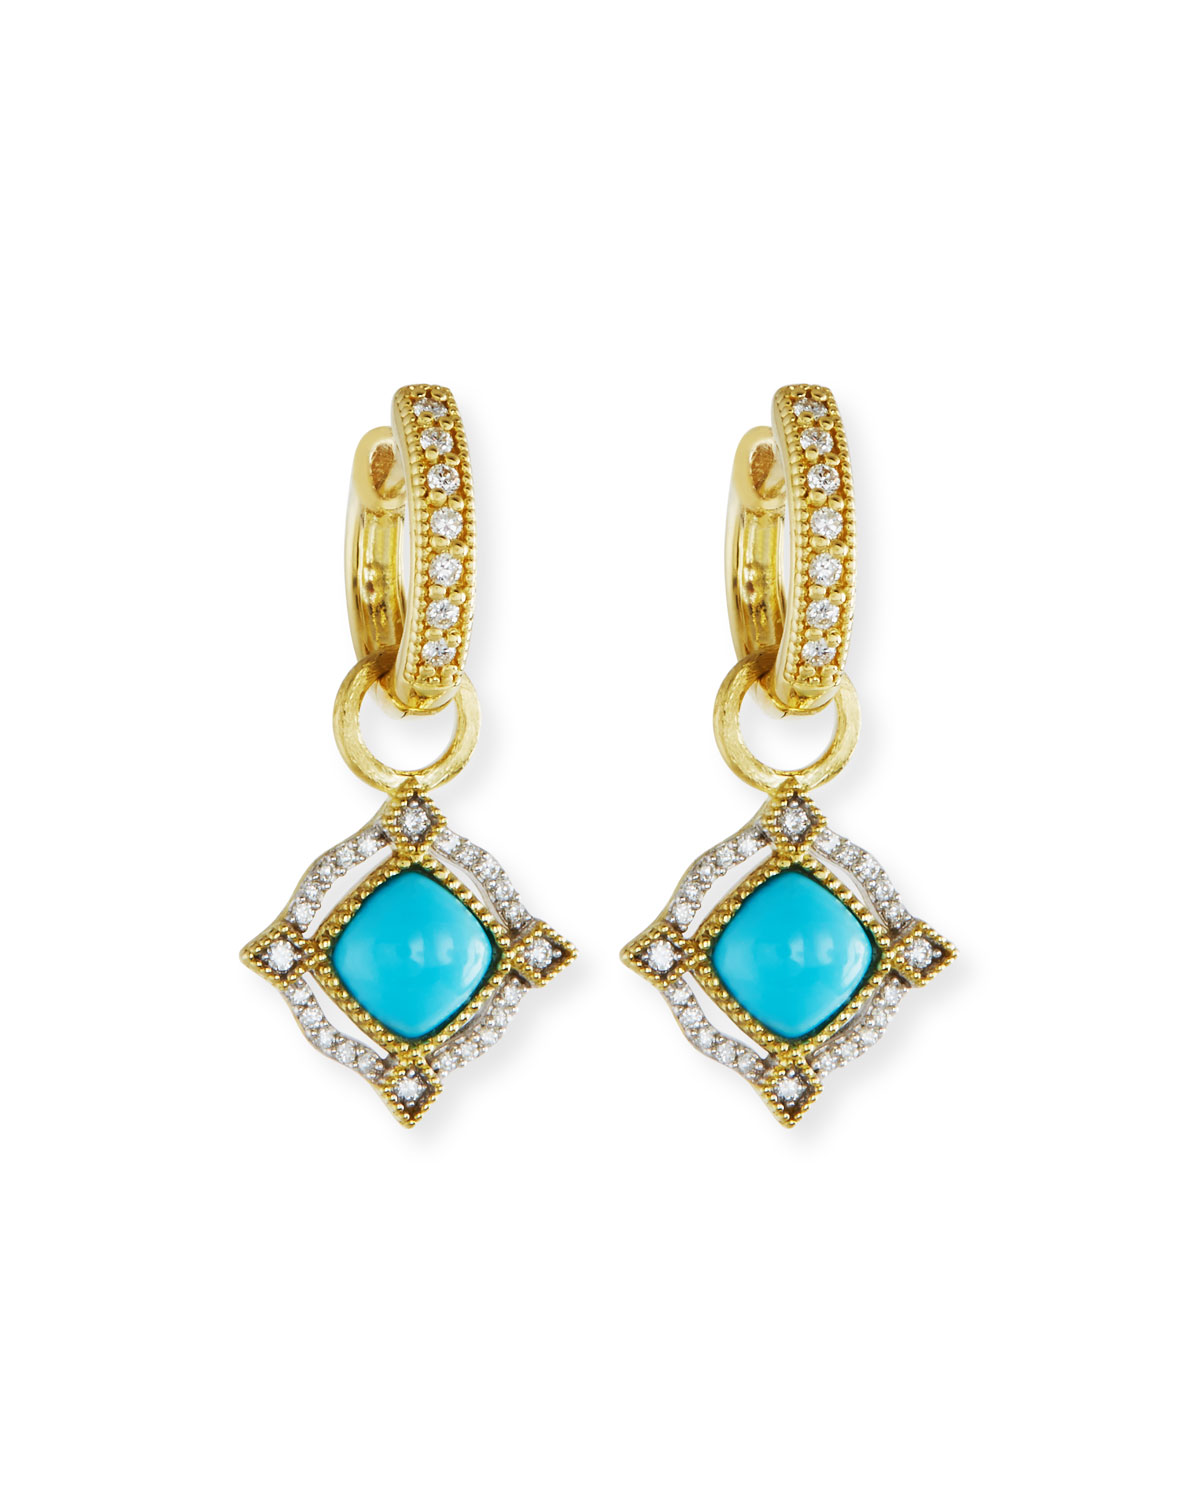 Jude Frances Lisse 18K Delicate Cushion Turquoise Earring Charms with Diamonds vluMed